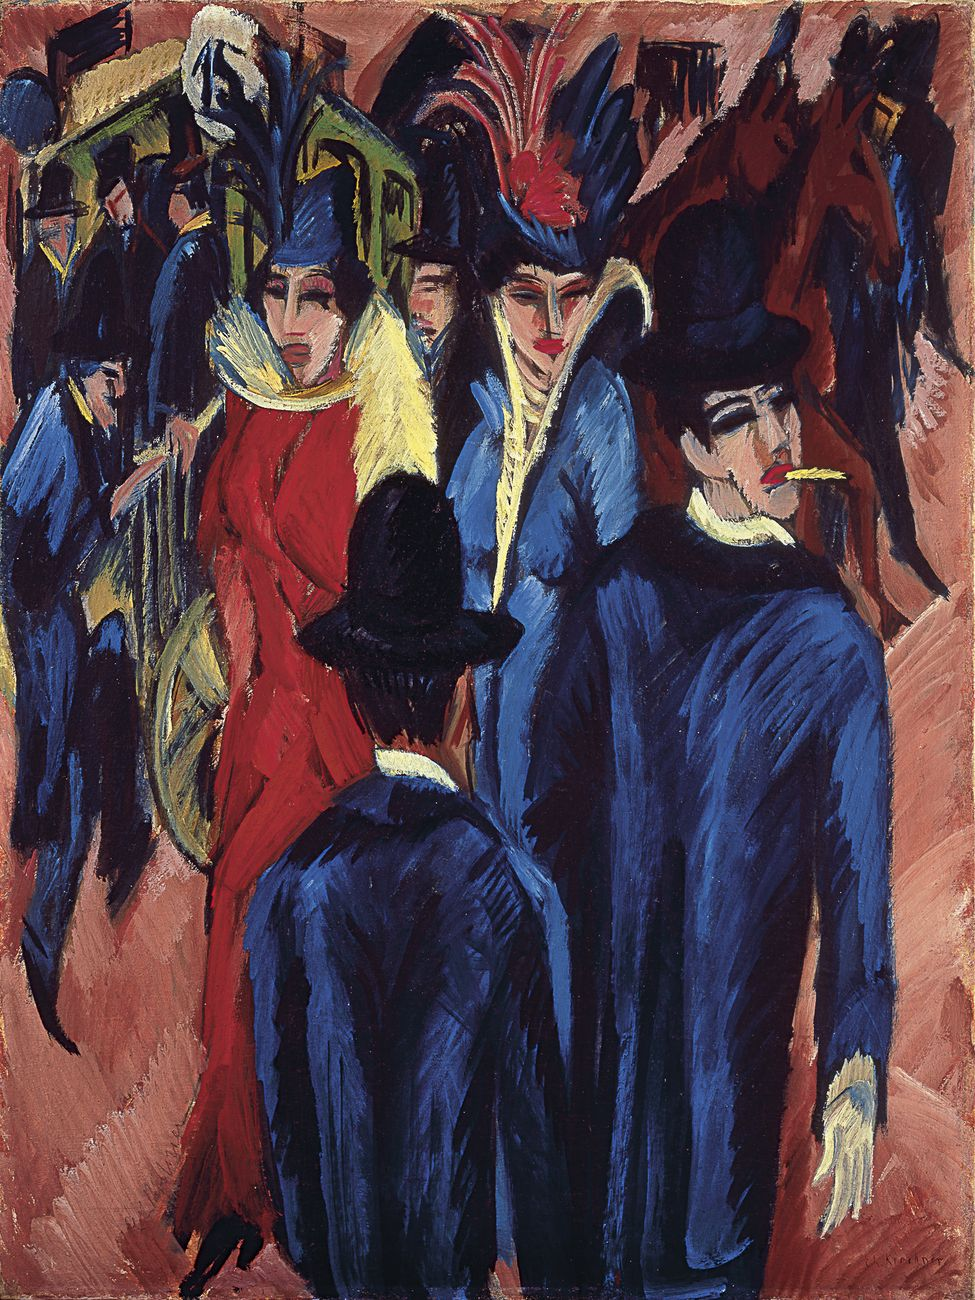 Ernst Ludwig Kirchner, Berlin Street Scene, 1913 14. Neue Galerie, New York & Private Collection